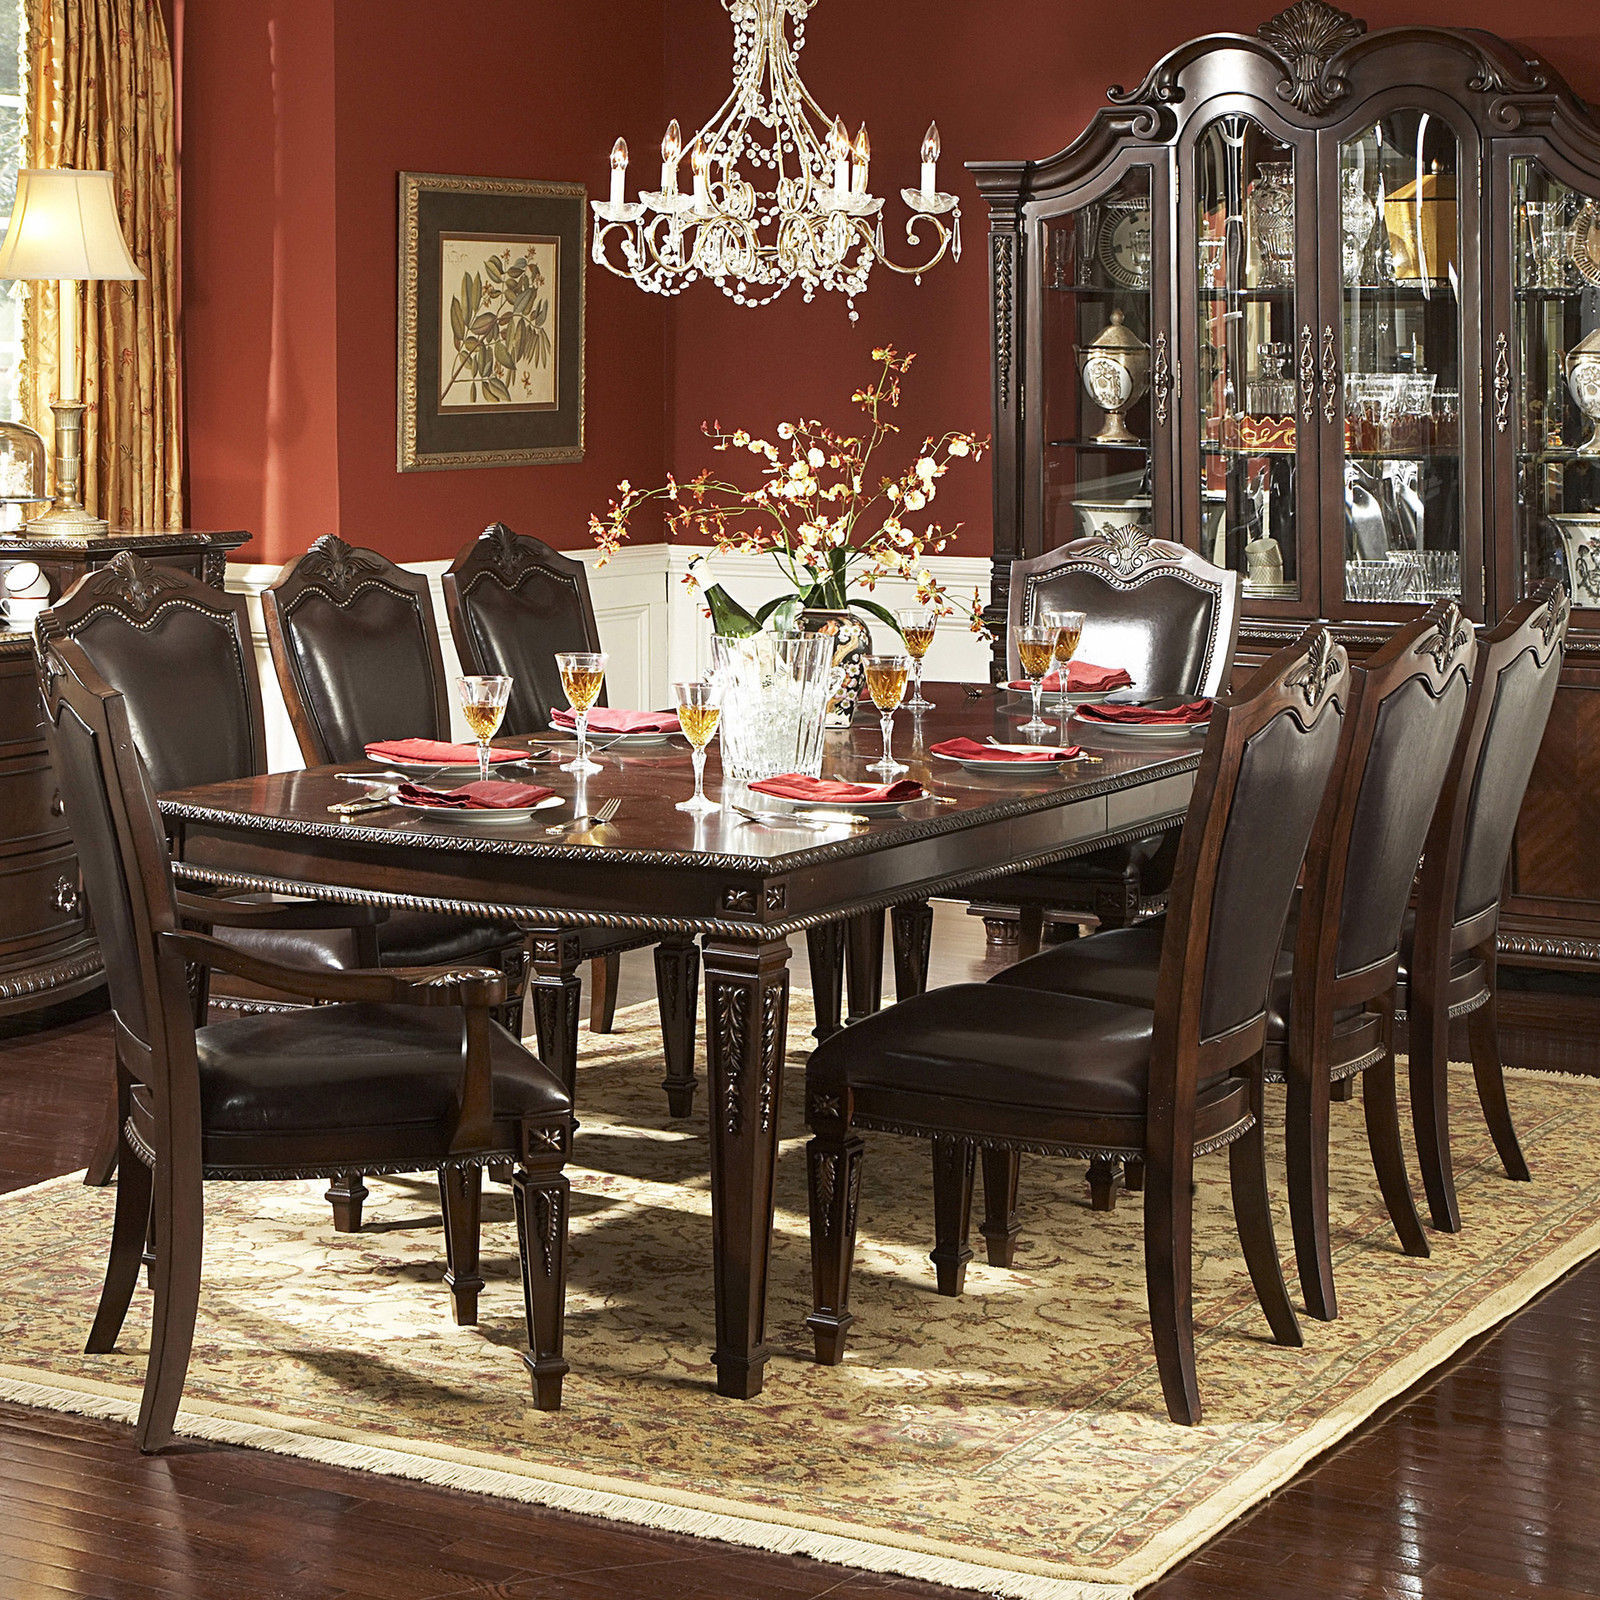 elegant antique 9 piece dining room furniture set w extendable table